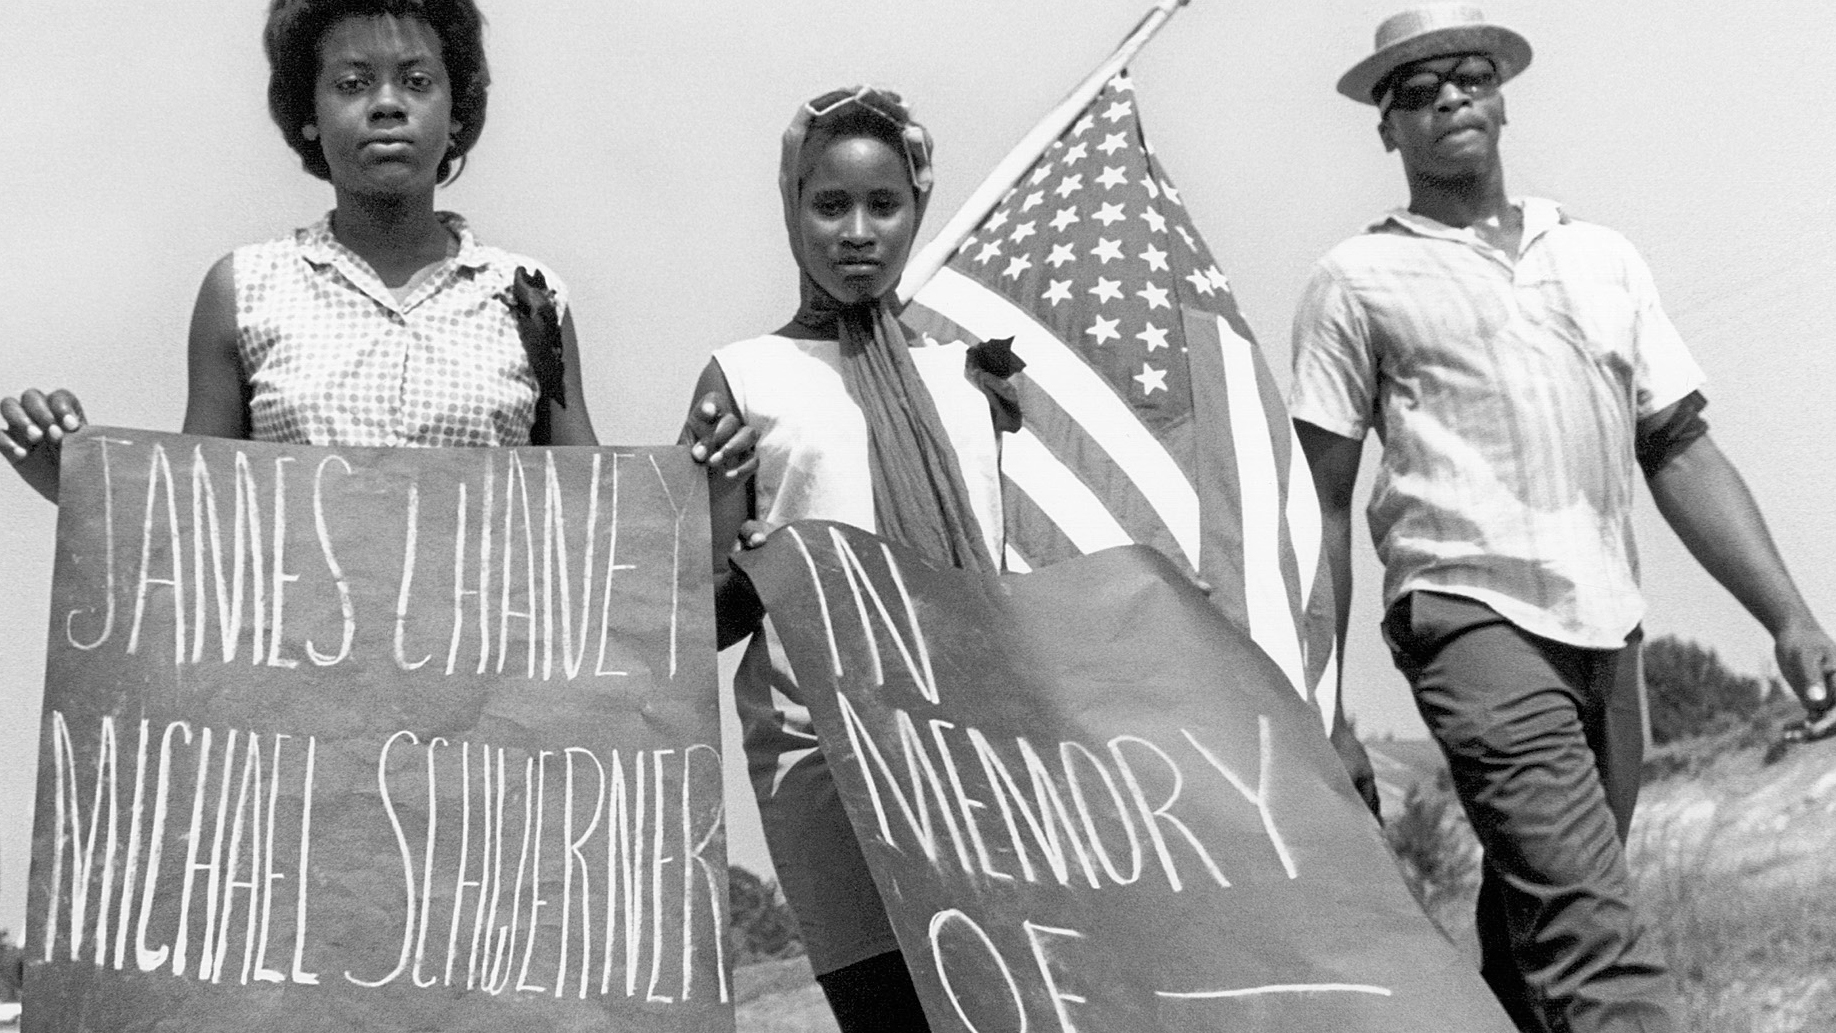 Photo from a book cover of three young black people protesting in the 1960s.